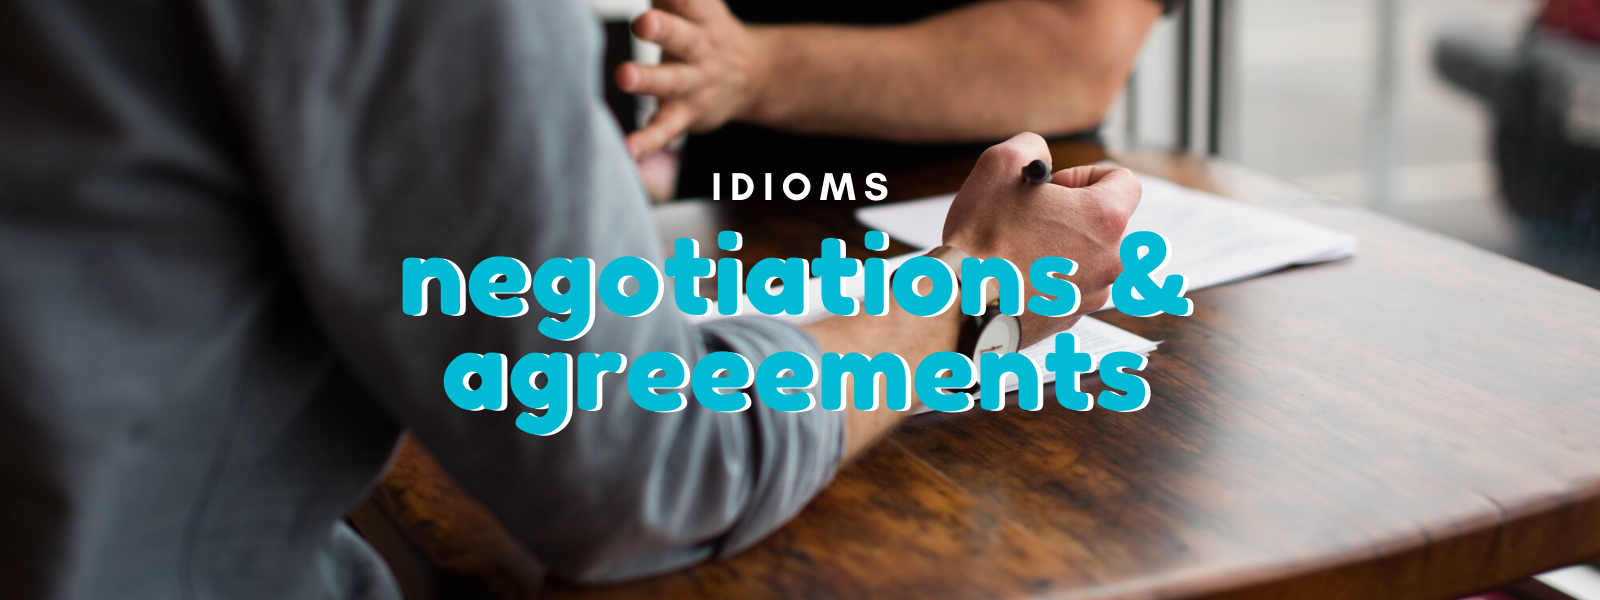 Talaera Business Idioms Negotiations and Agreements